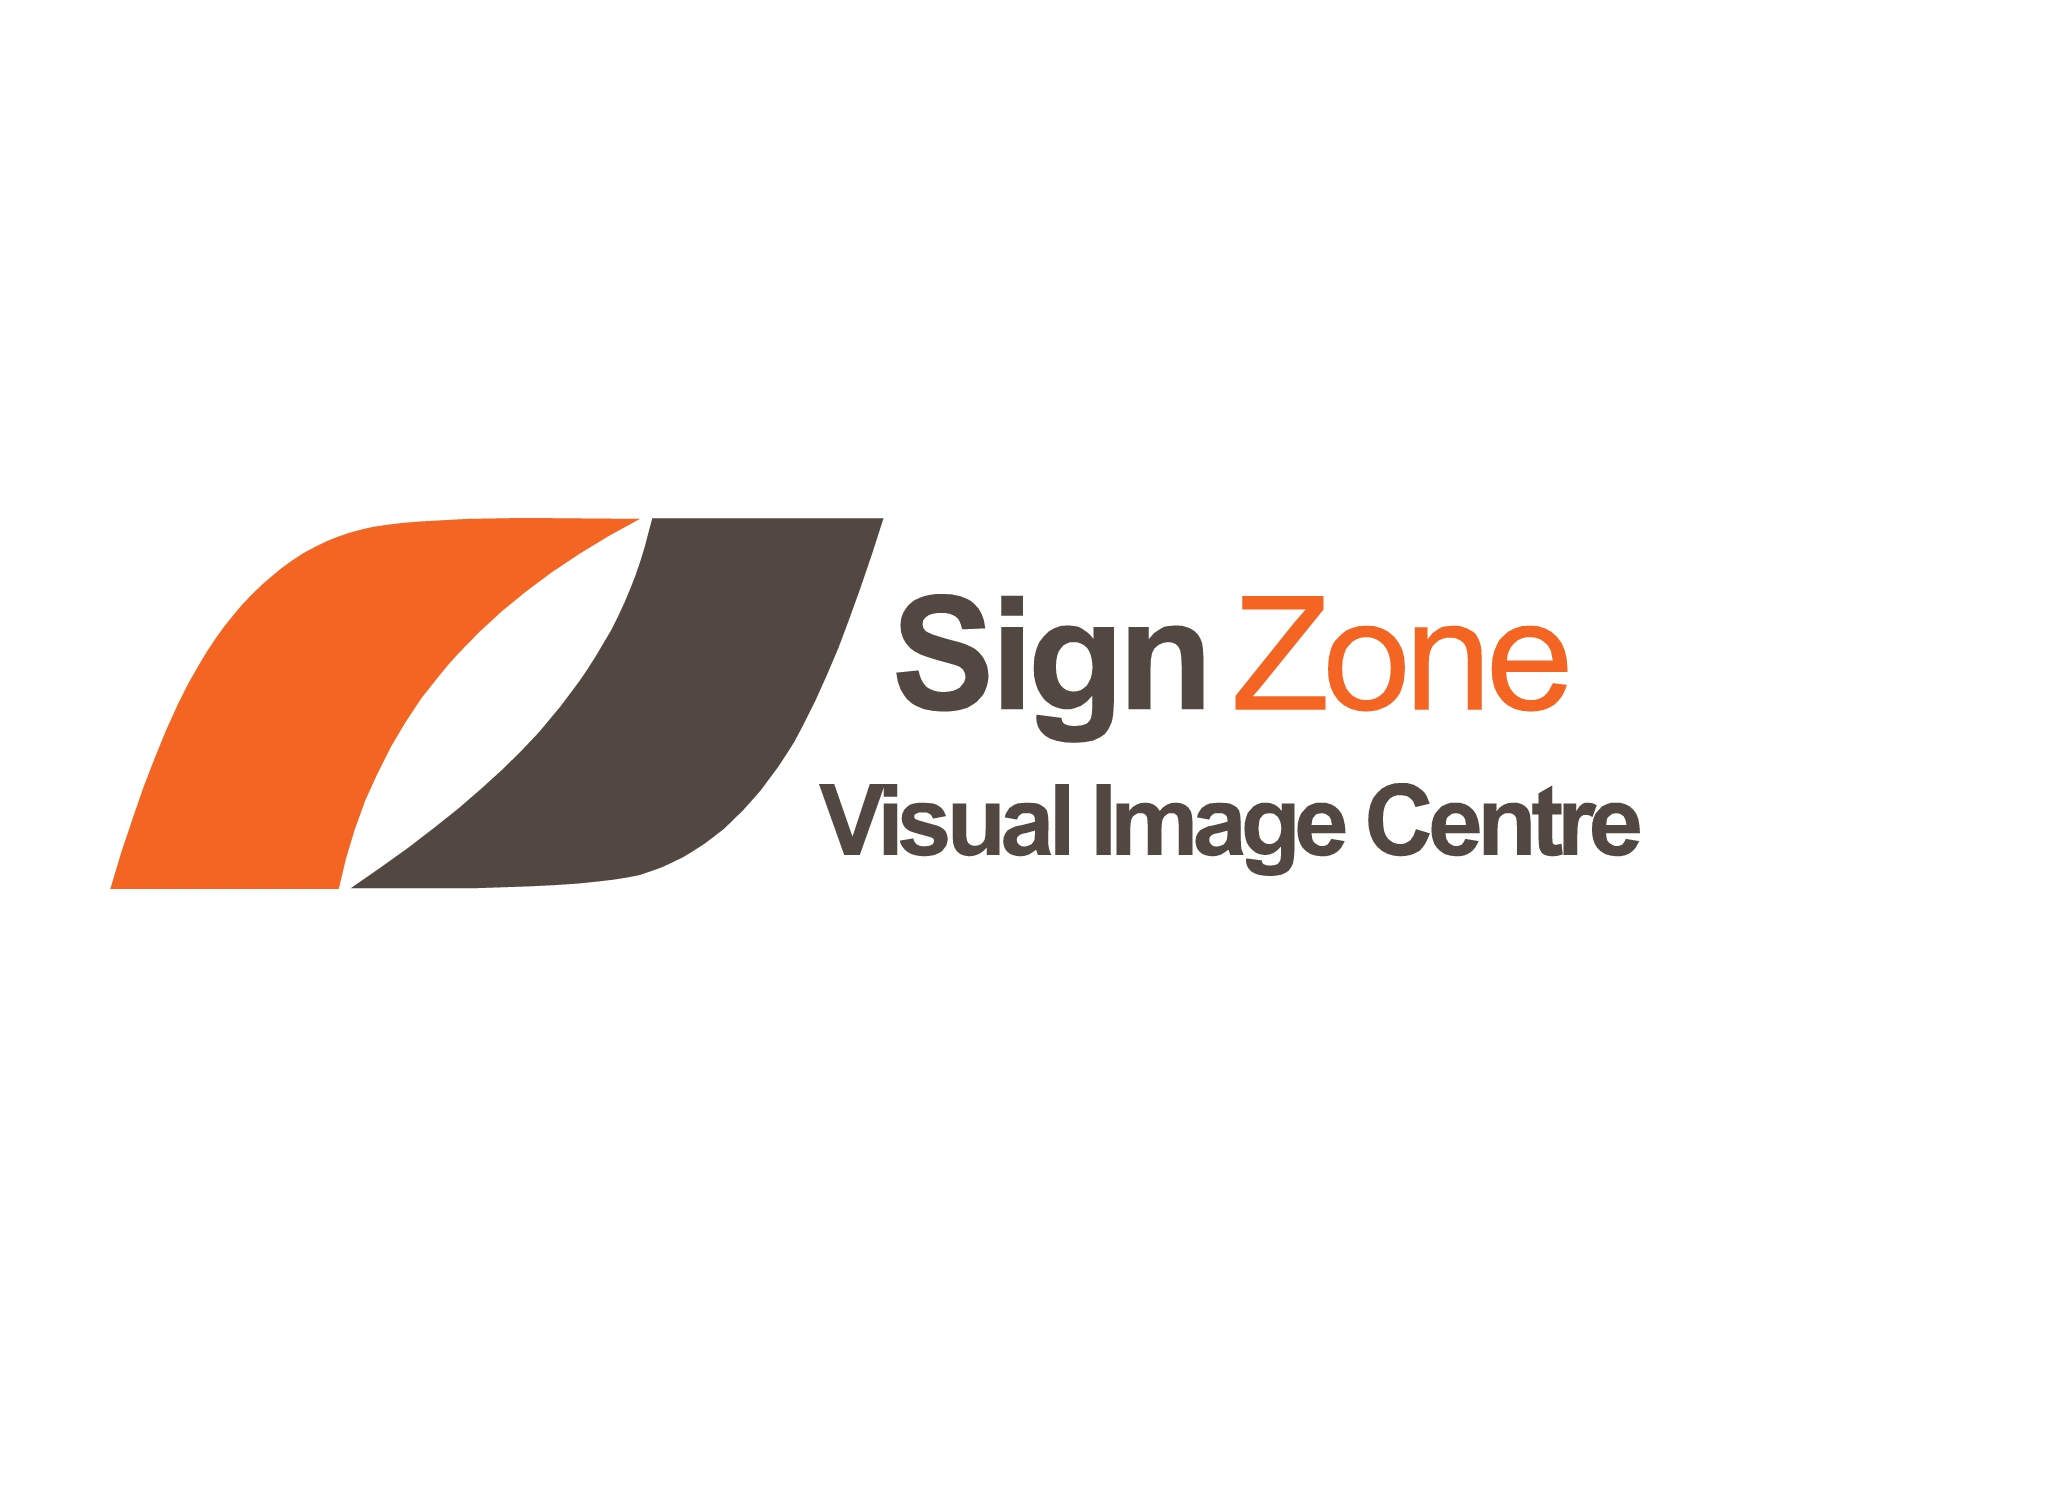 Logo Design by Marco Paulo Jamero - Entry No. 102 in the Logo Design Contest Fun Logo Design for The Sign Zone.